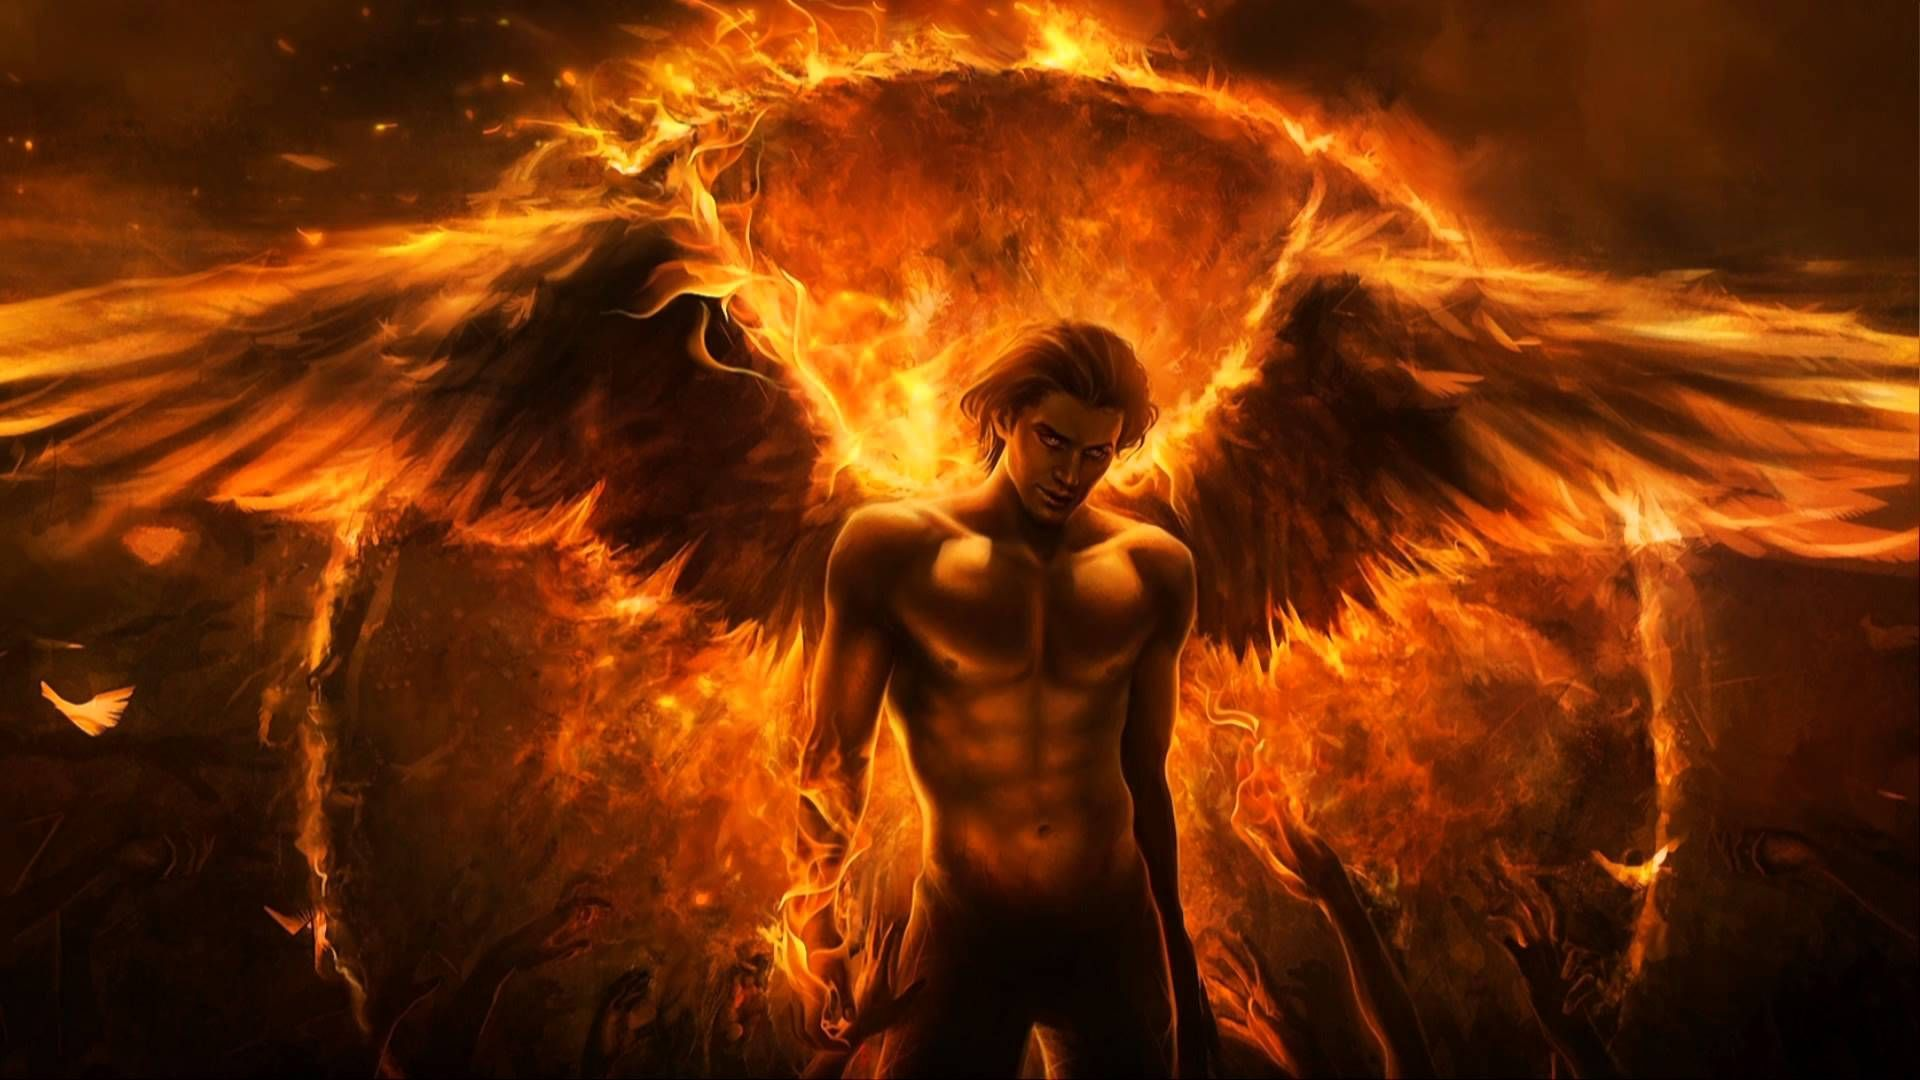 Pictures Of The Fiery Angel Guy